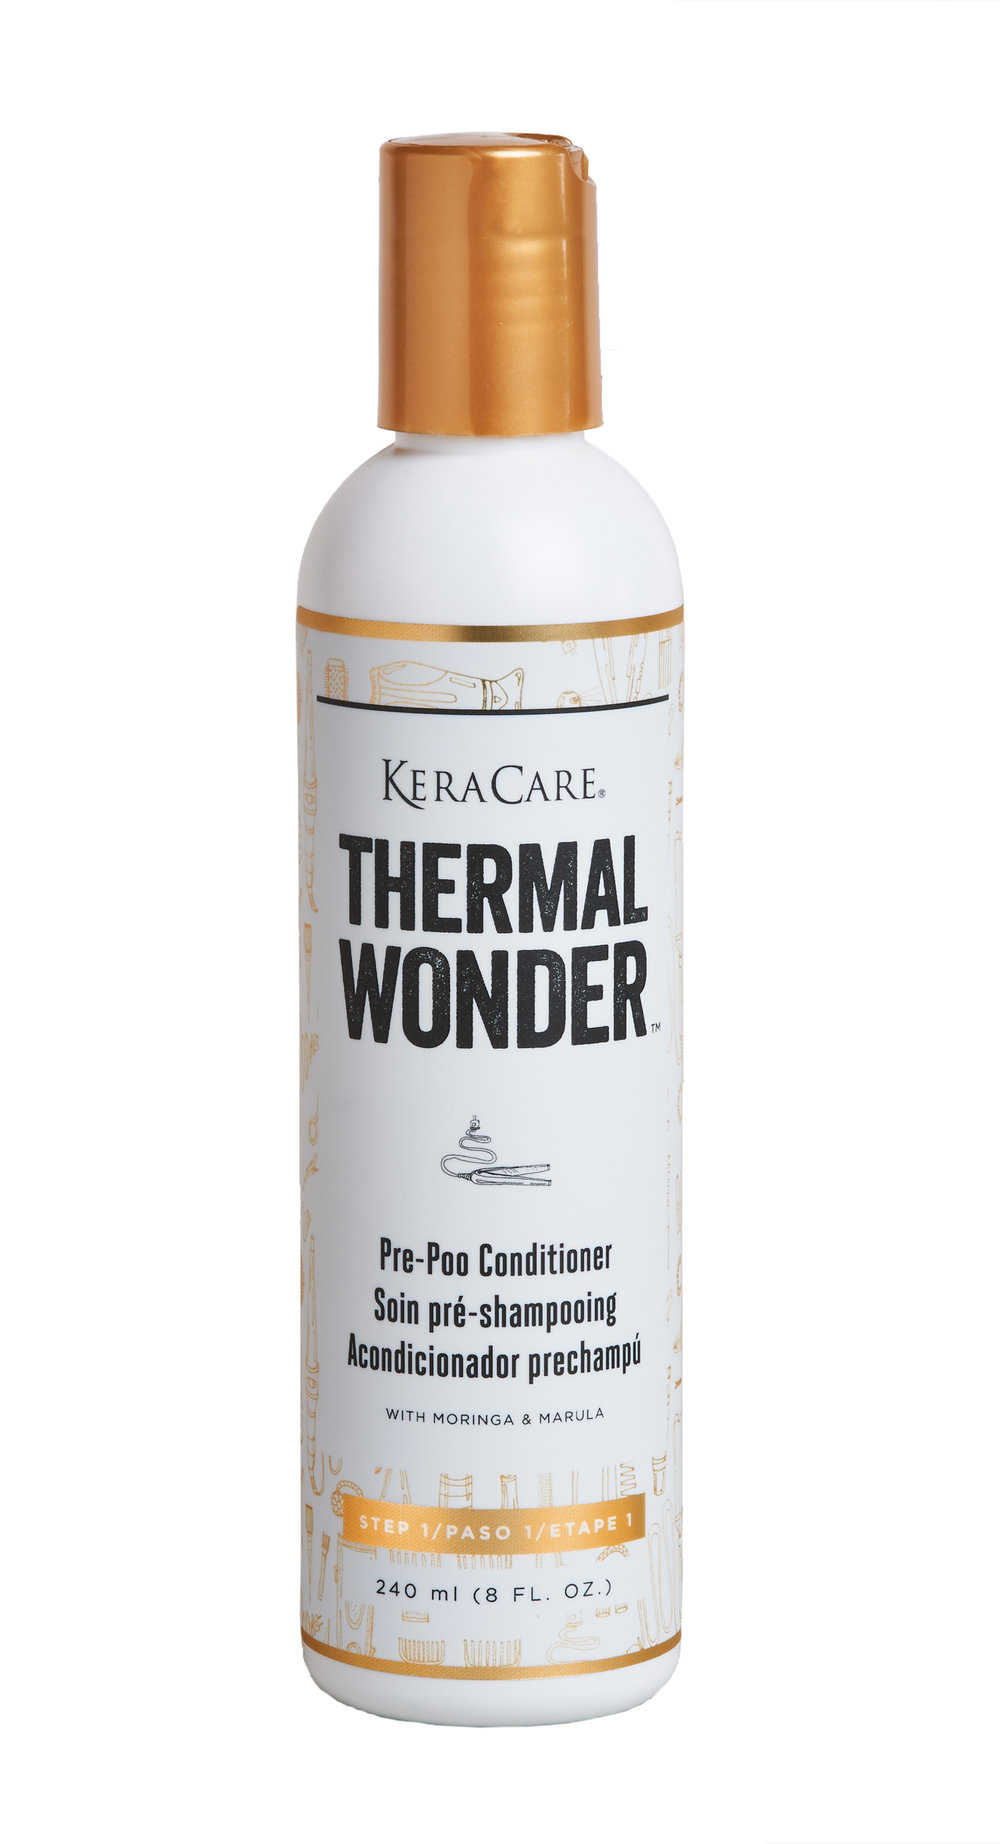 Thermal Wonder ™ Pre-Poo Conditioner